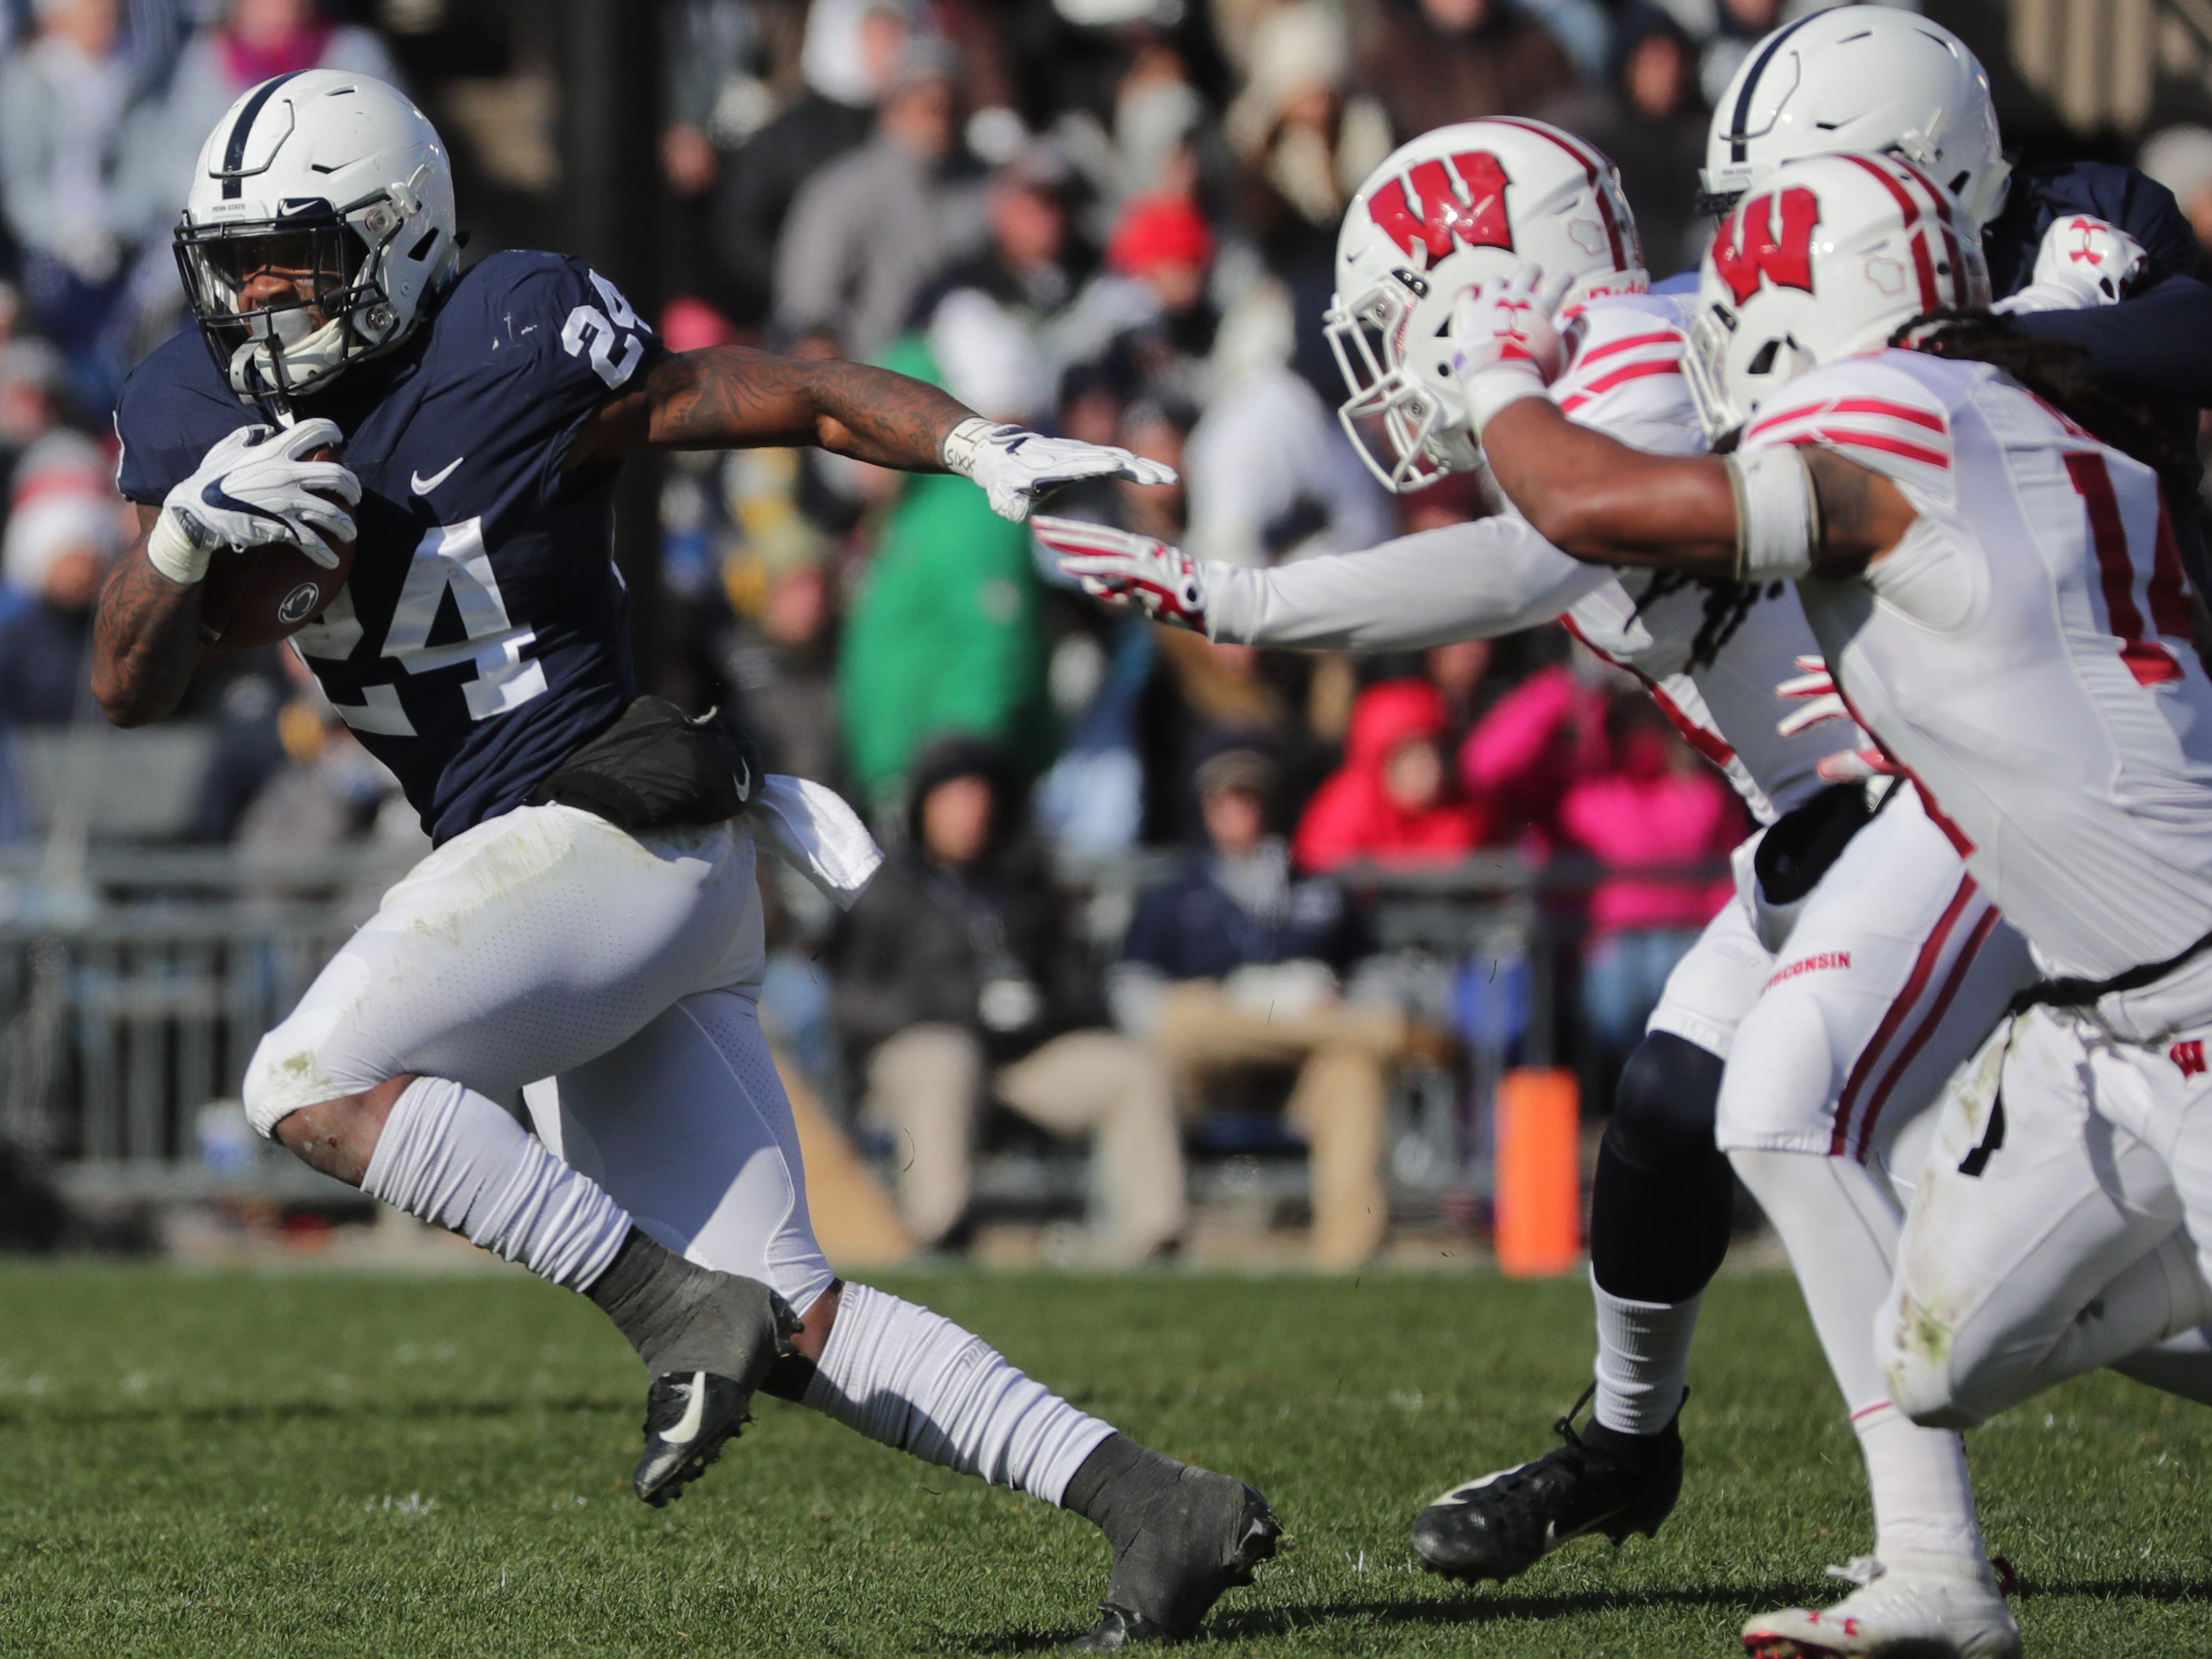 Penn State running back Miles Sanders turns the corner on the Wisconsin defense on Saturday.